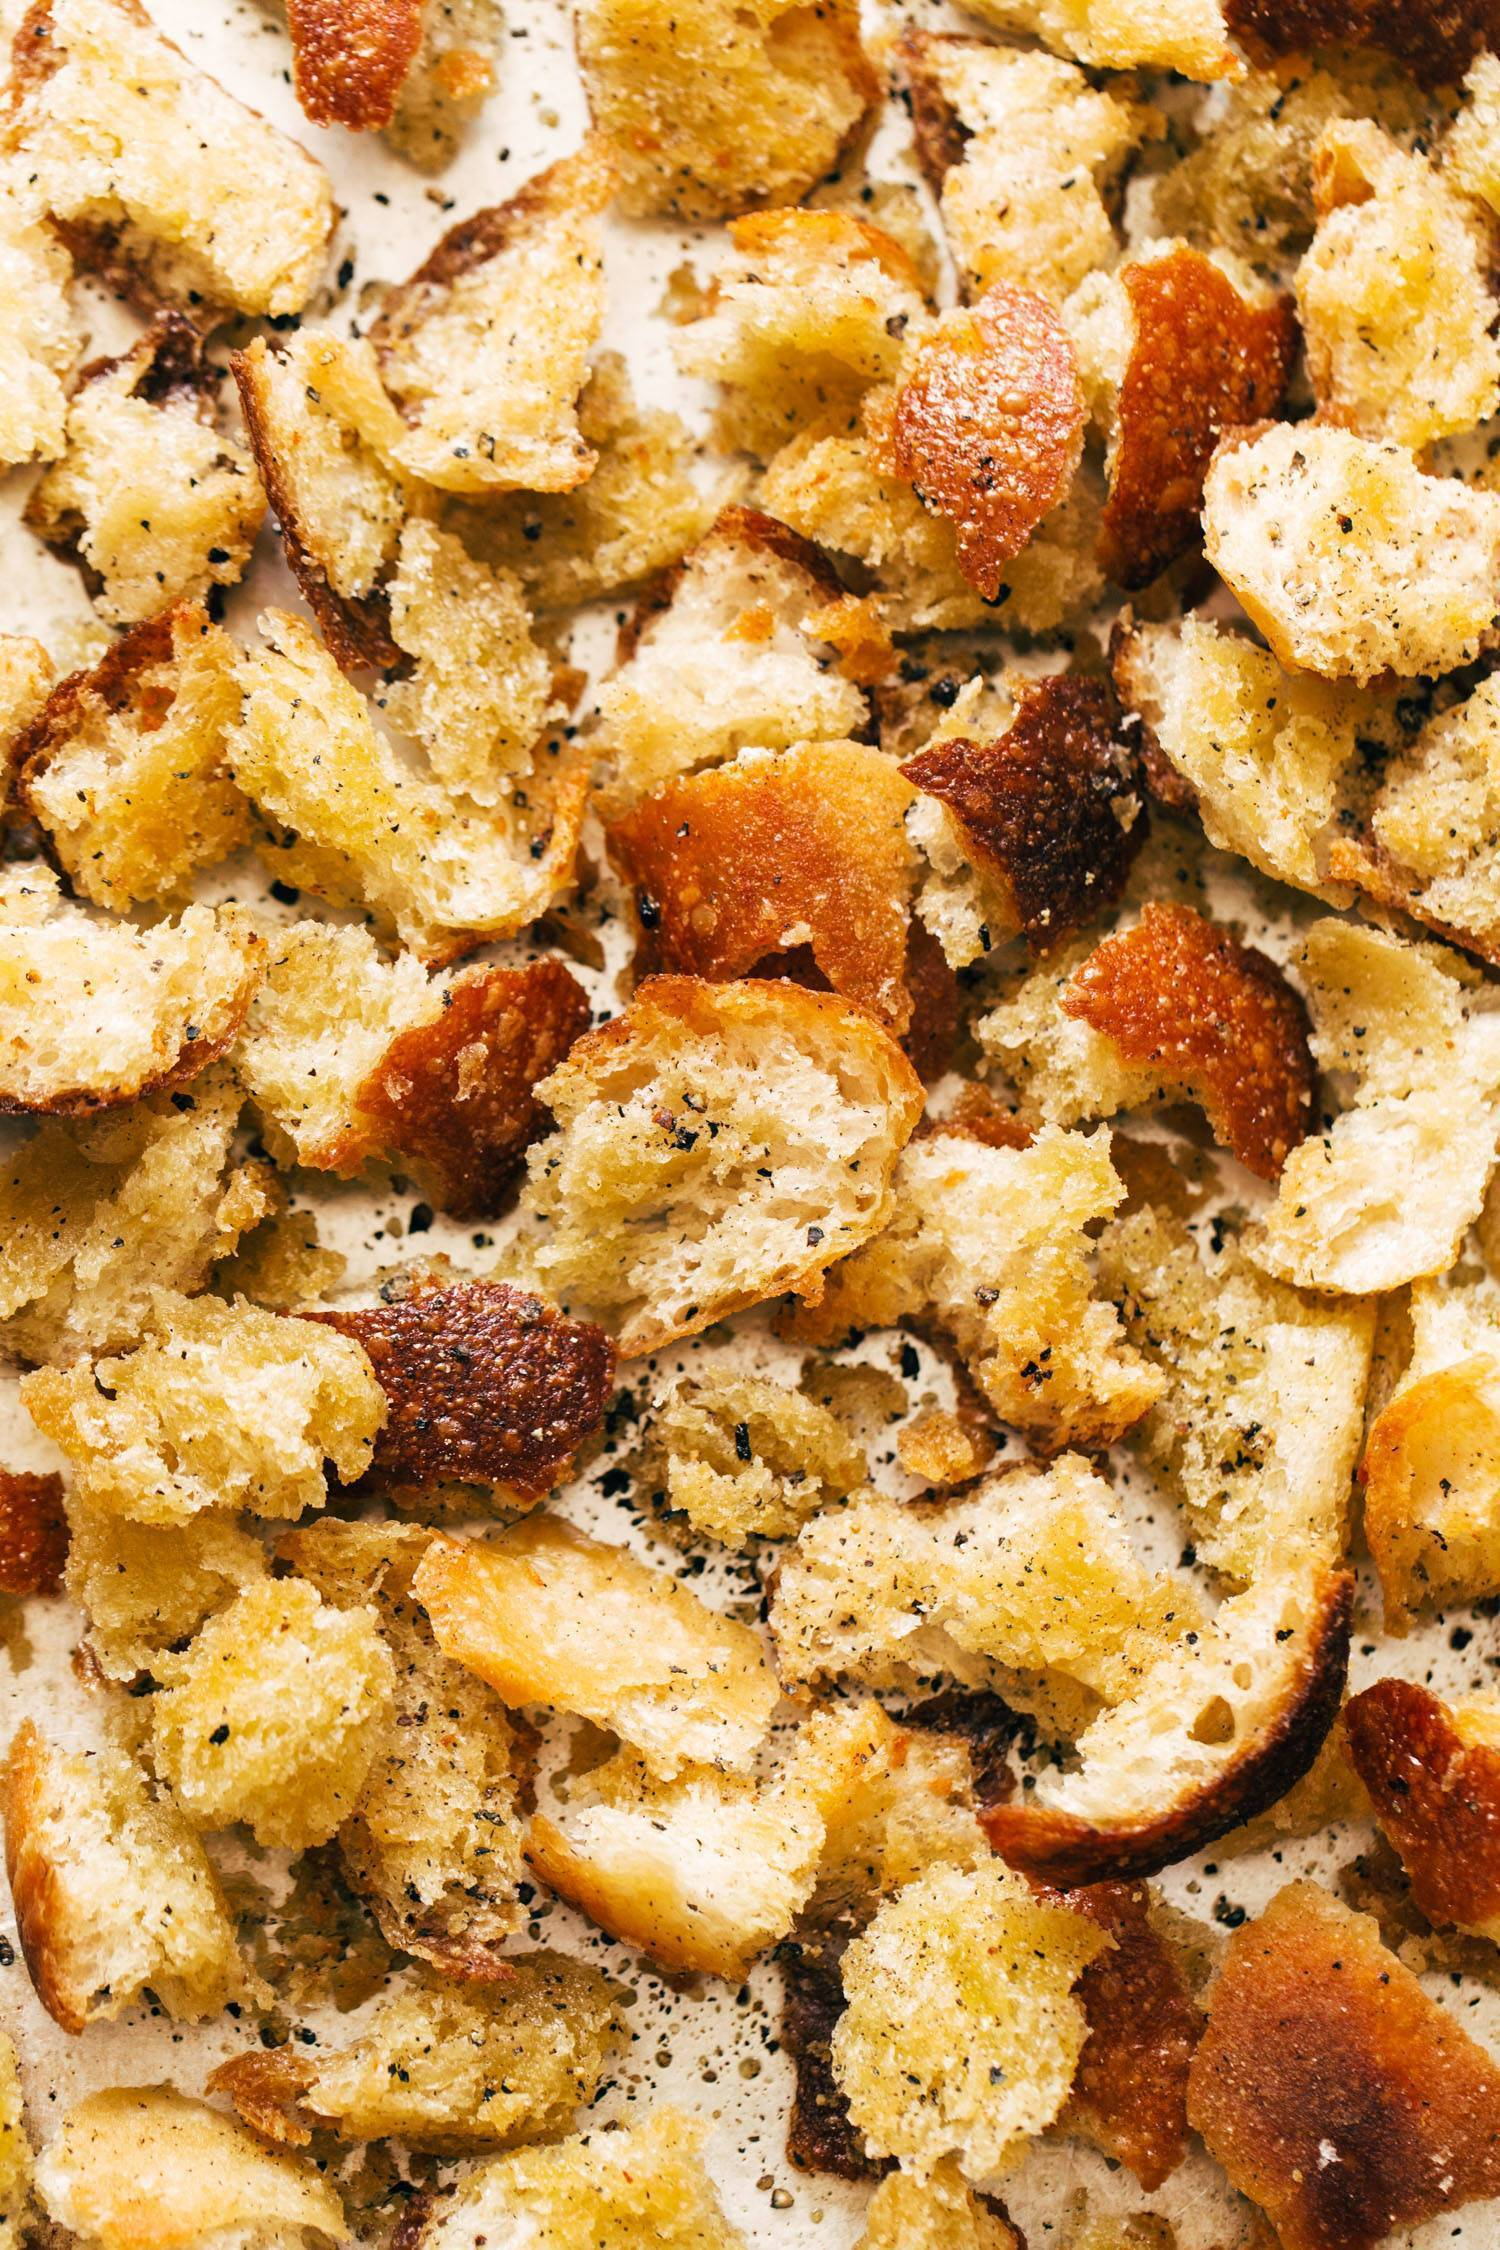 Peppery hand-torn croutons on a sheet pan.